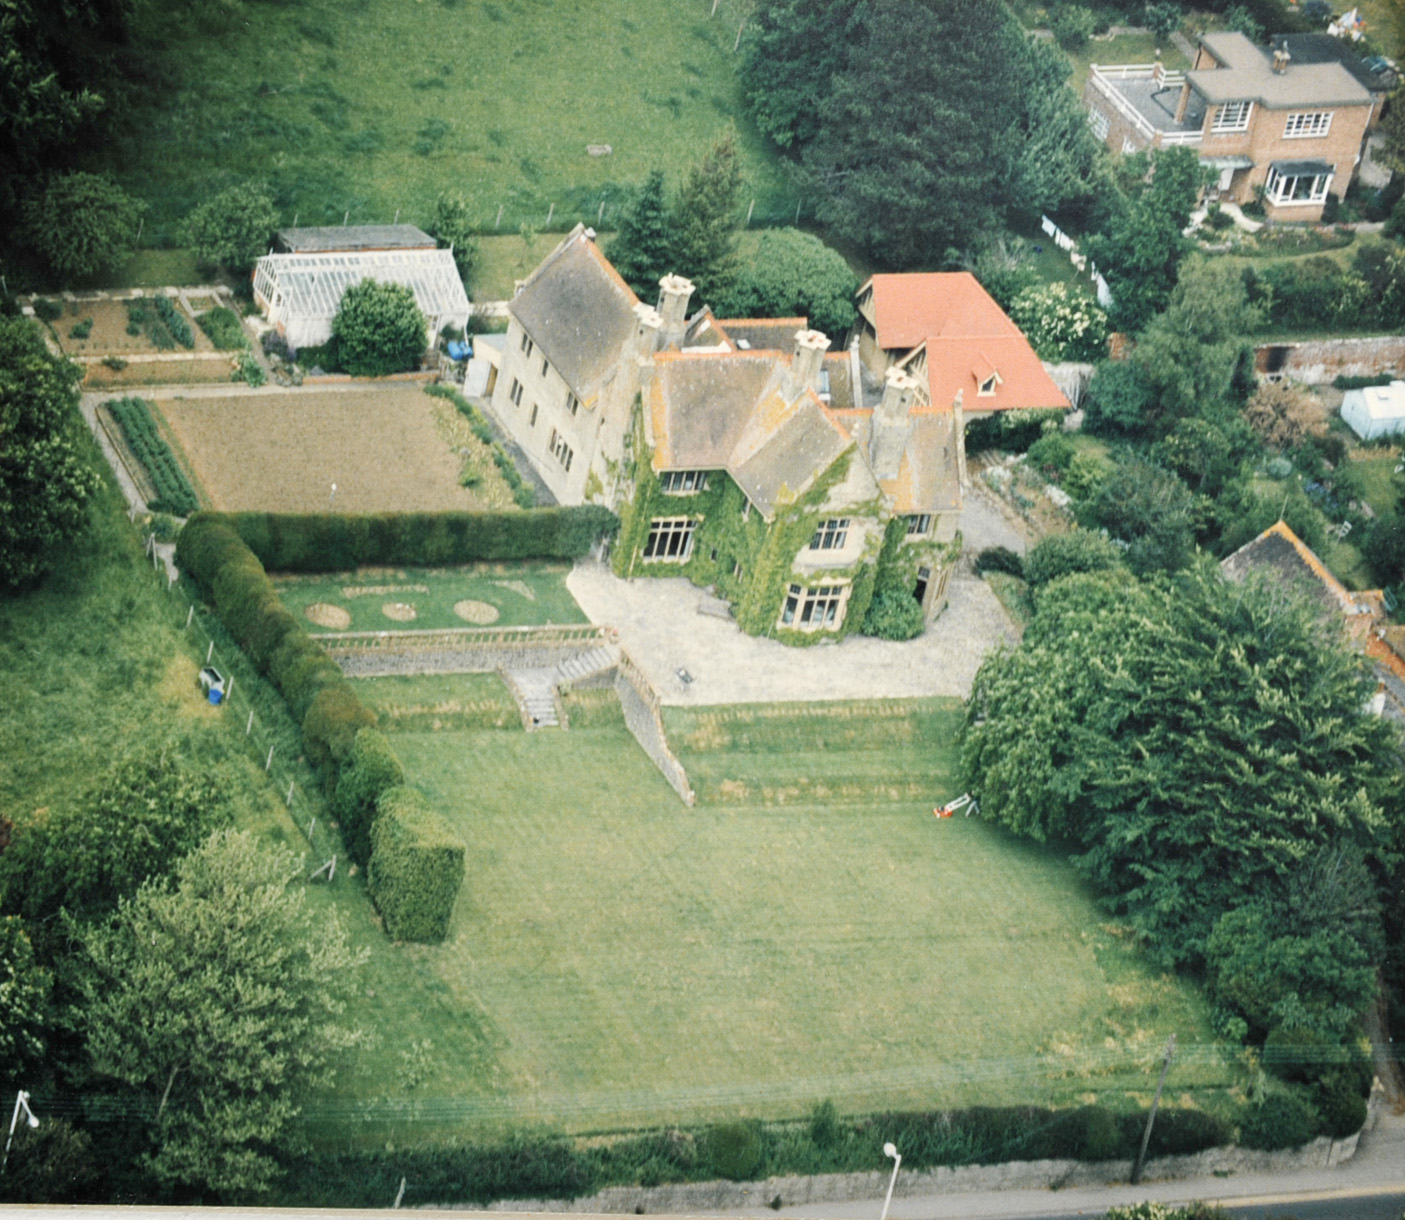 An aerial view of the Gables